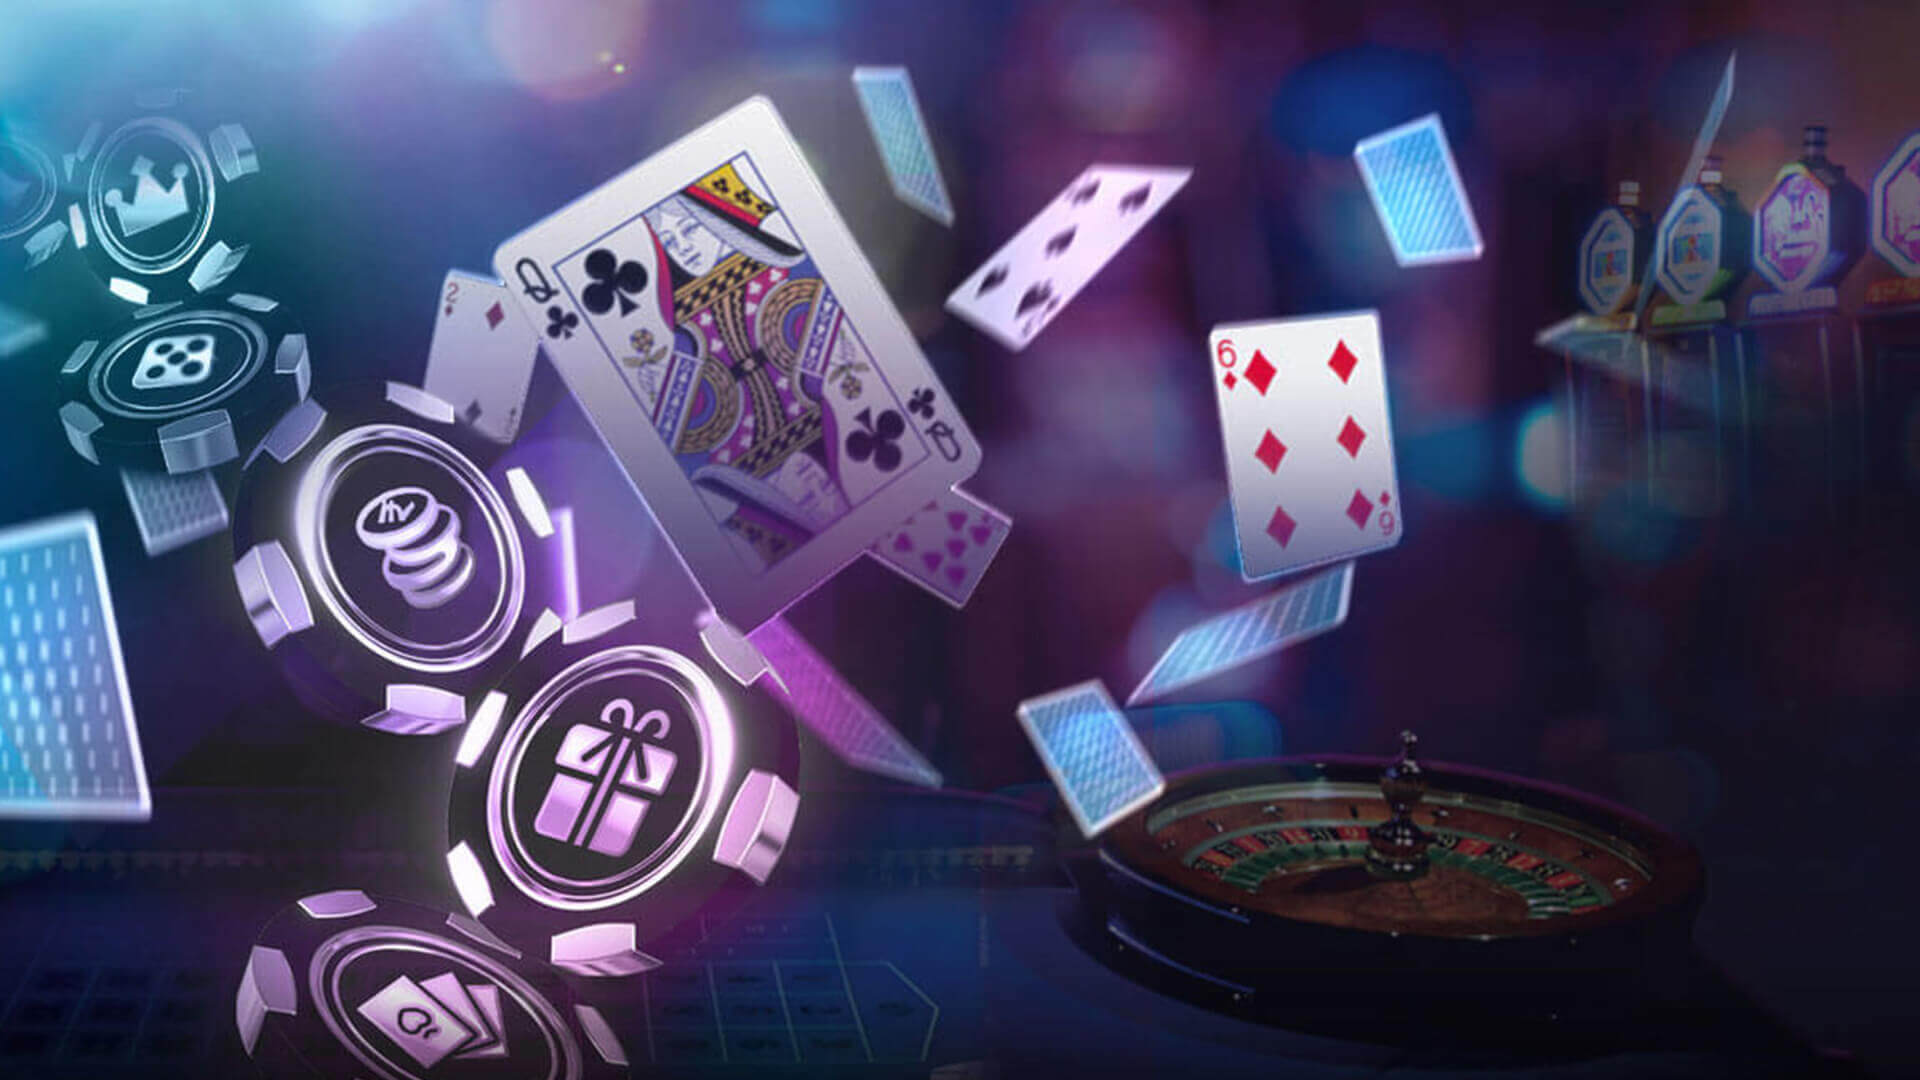 Know In Details About The Addiction Of M88 Asia Gambling And Tips To Avoid